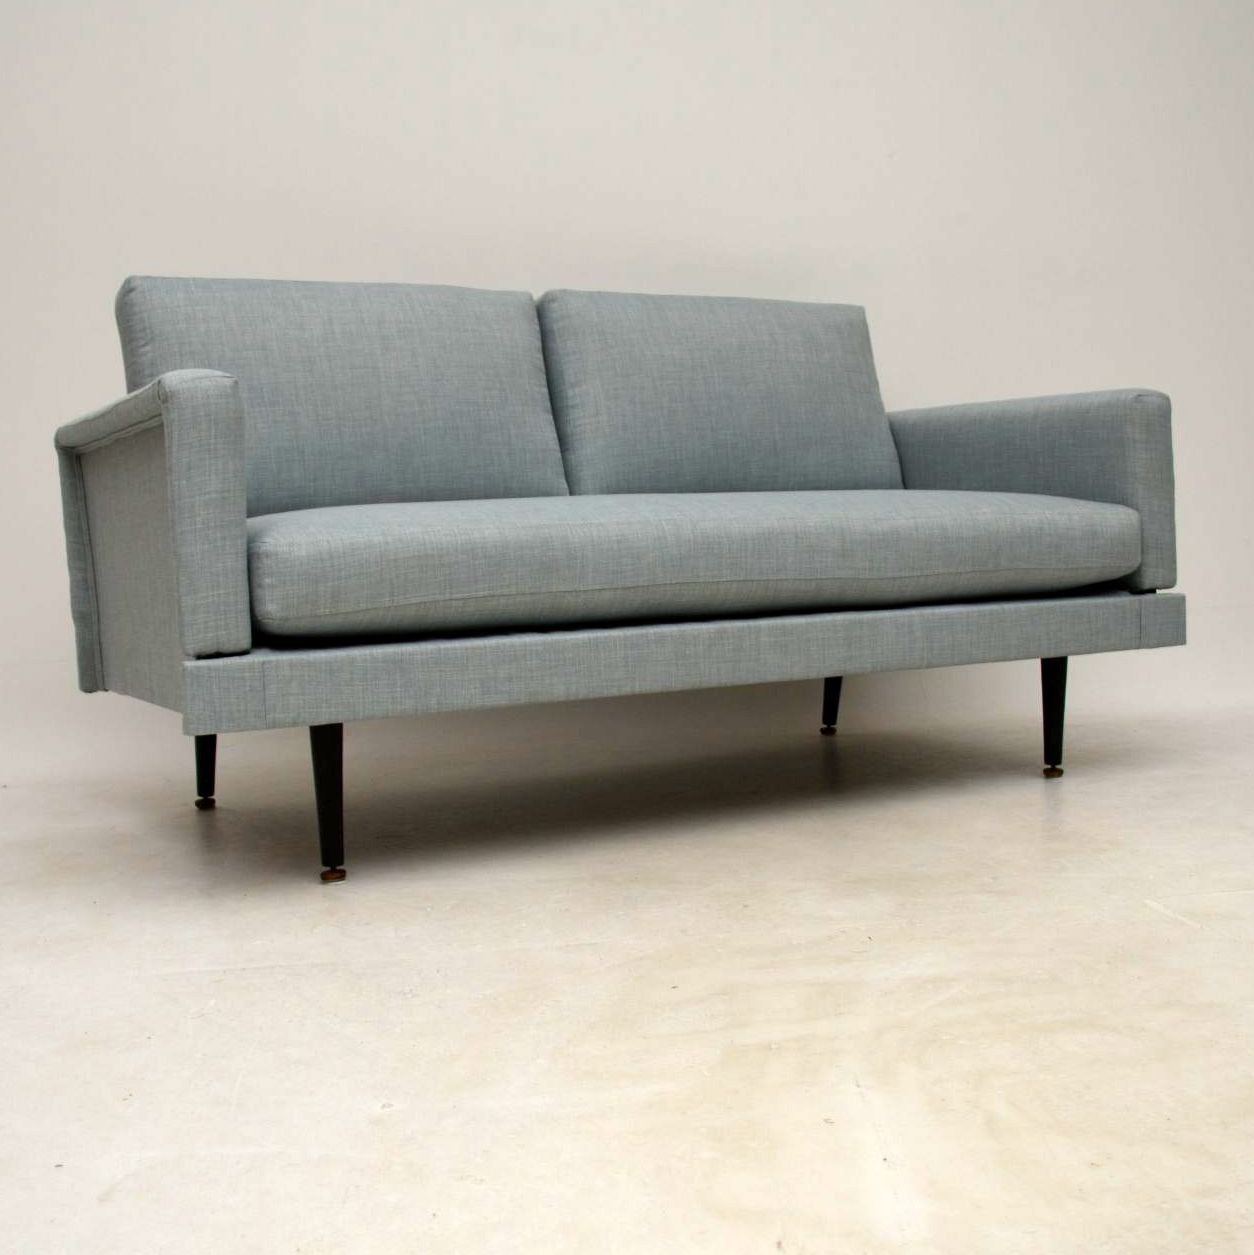 1950 s vintage sofa bed interior boutiques antiques for sale and mid century modern